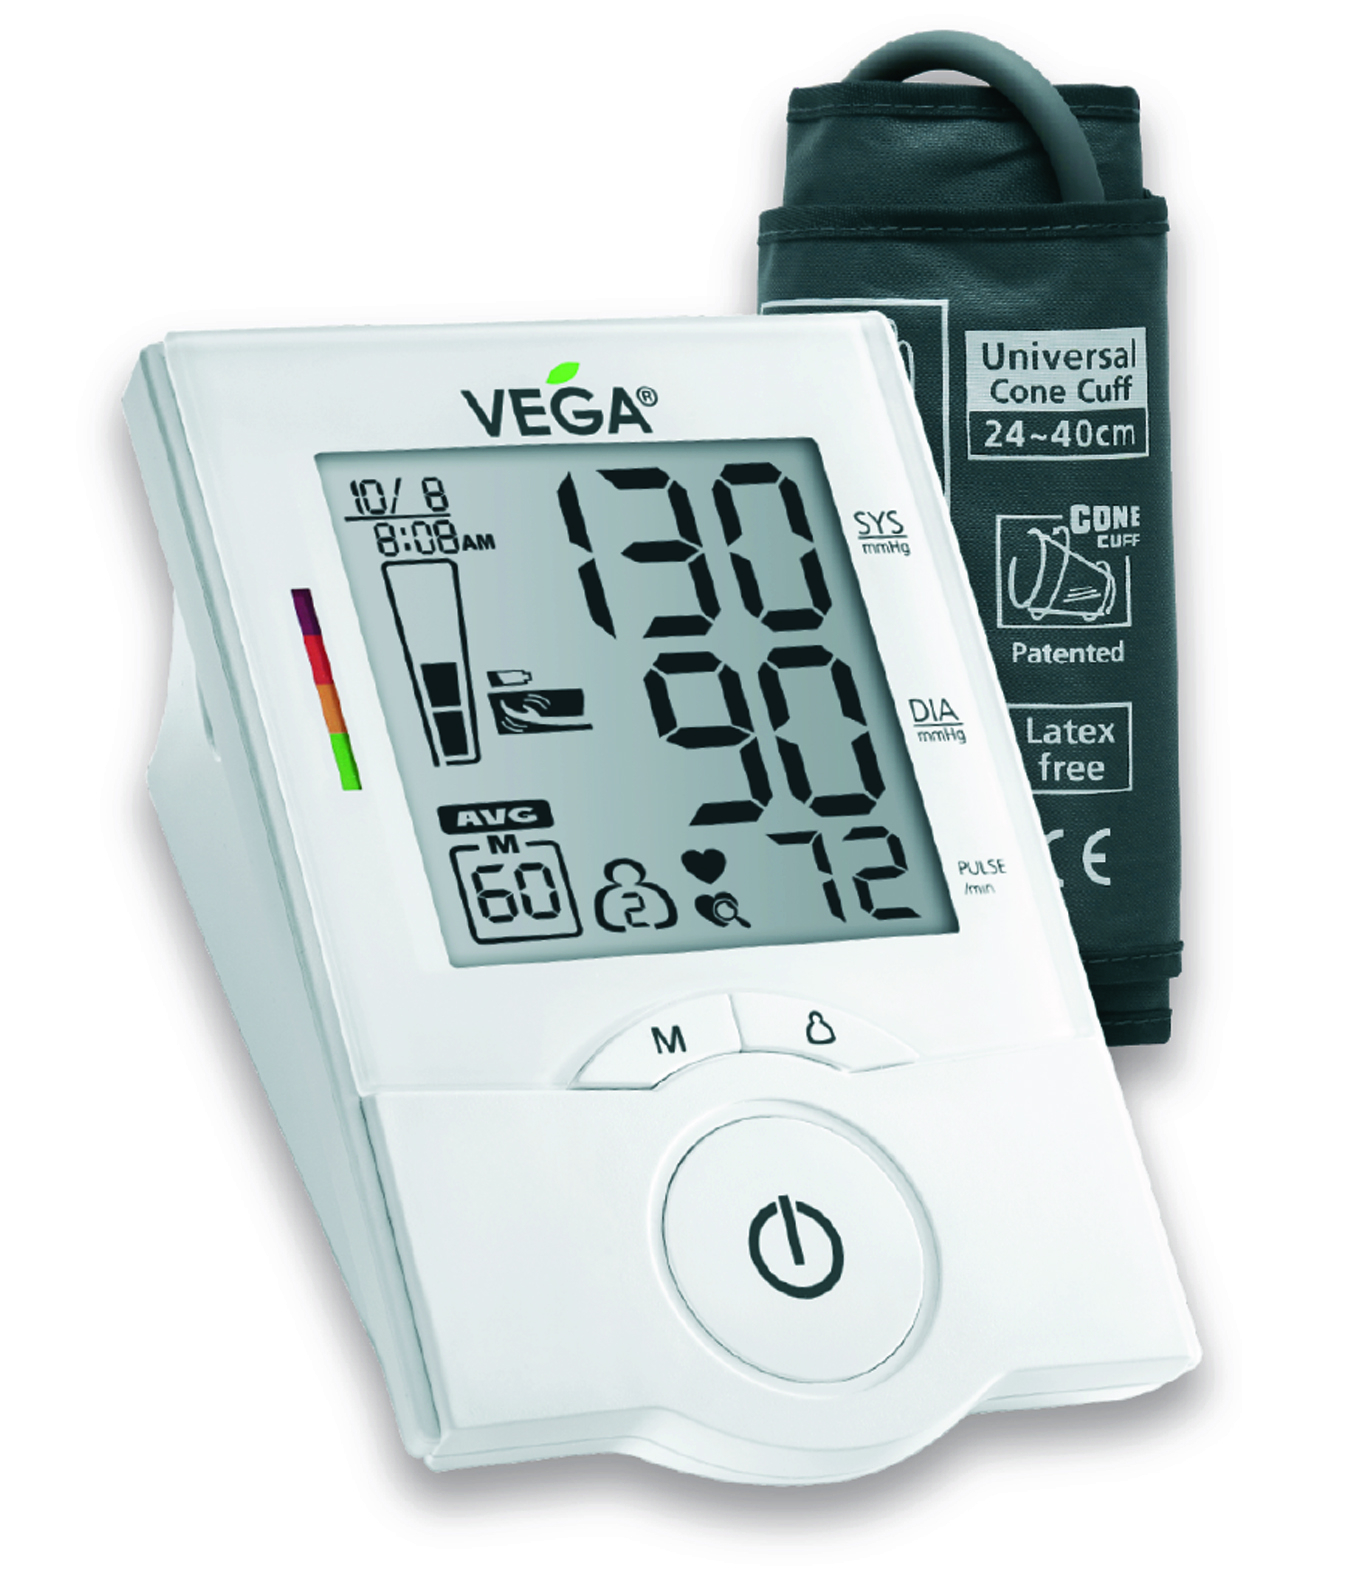 Automatic blood pressure monitor VA-320